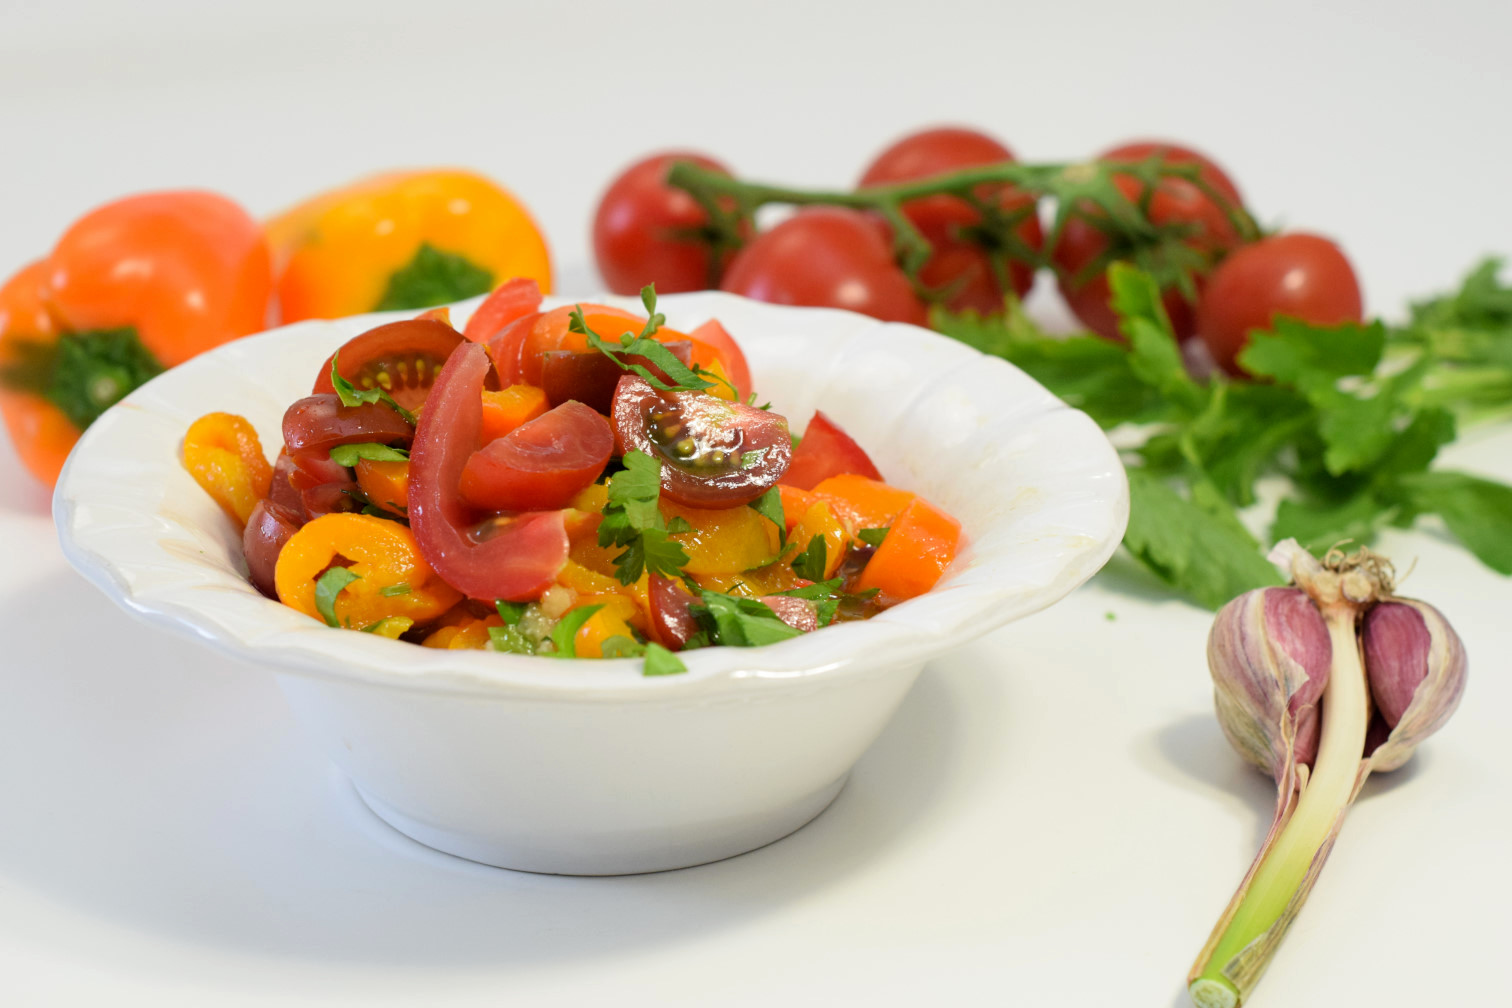 moroccan pepper salad for picnics recipe02